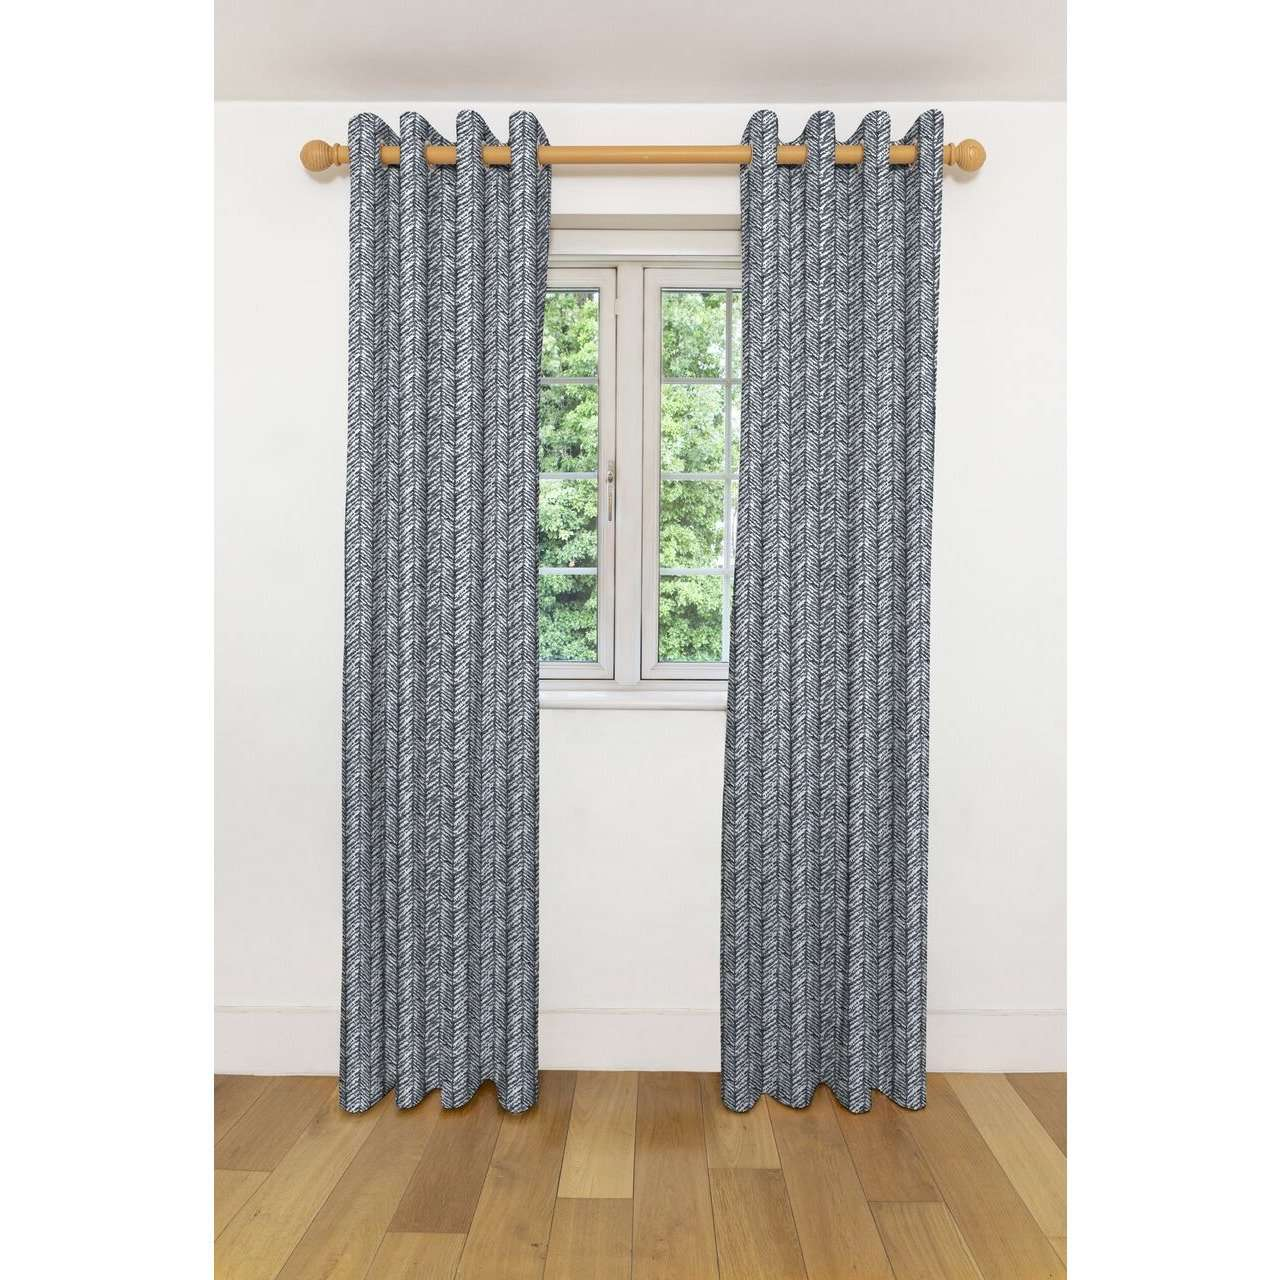 "McAlister Textiles Baja Black + White Curtains Tailored Curtains 116cm(w) x 182cm(d) (46"" x 72"")"